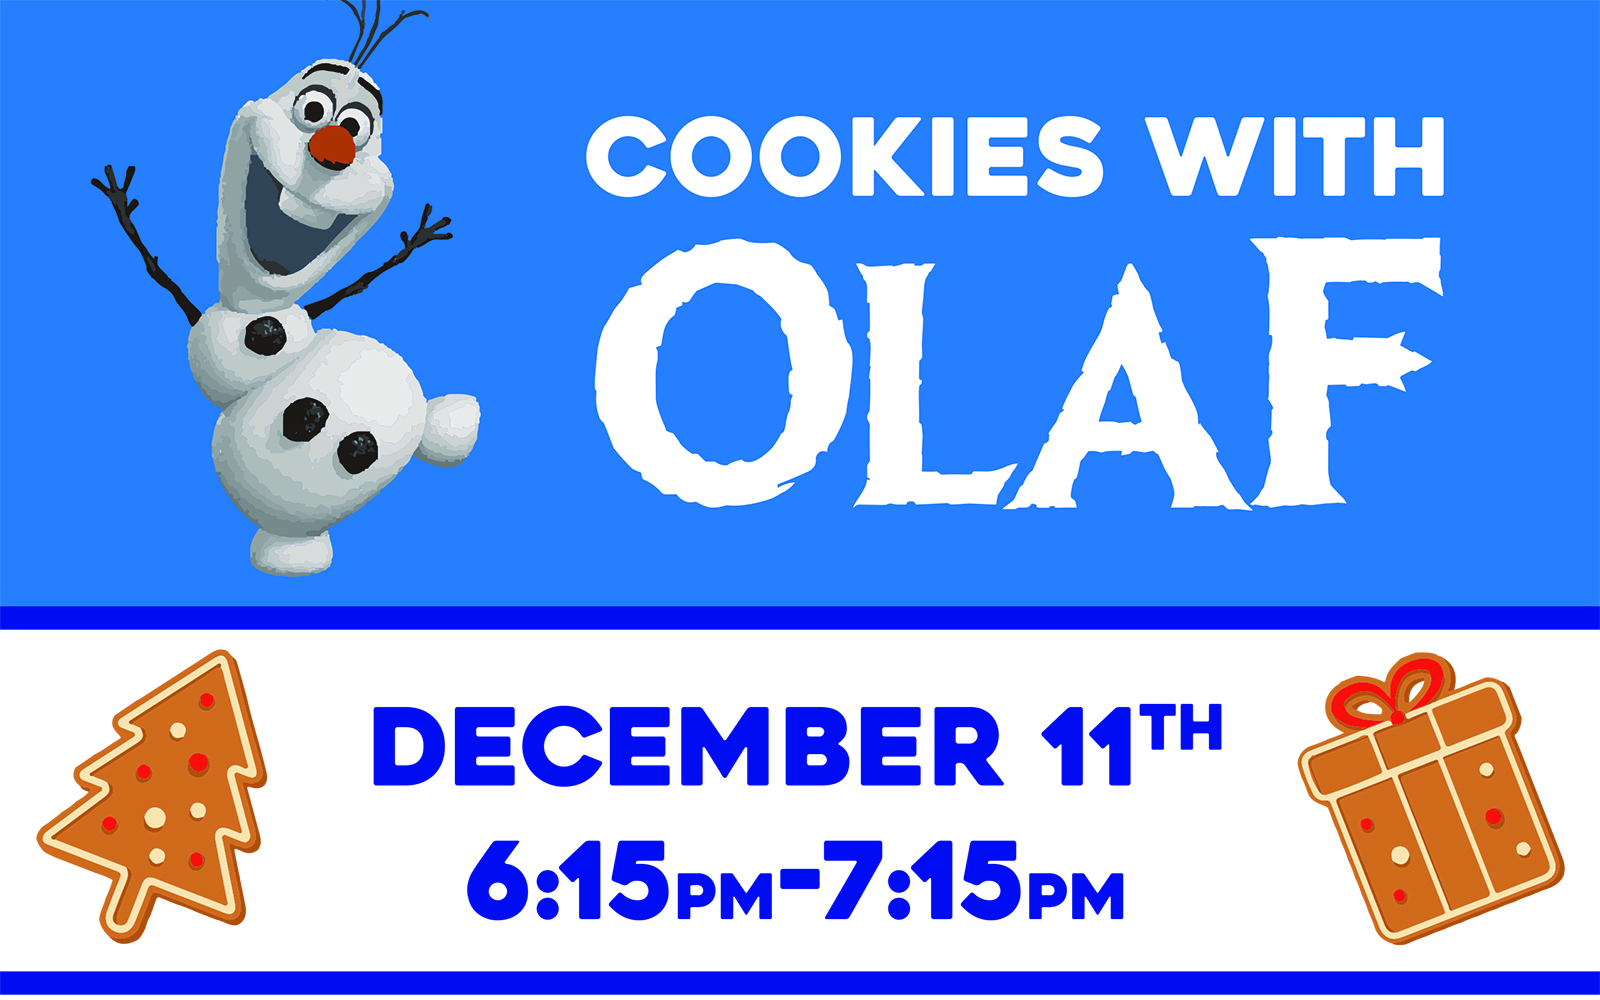 Cookies with Olaf